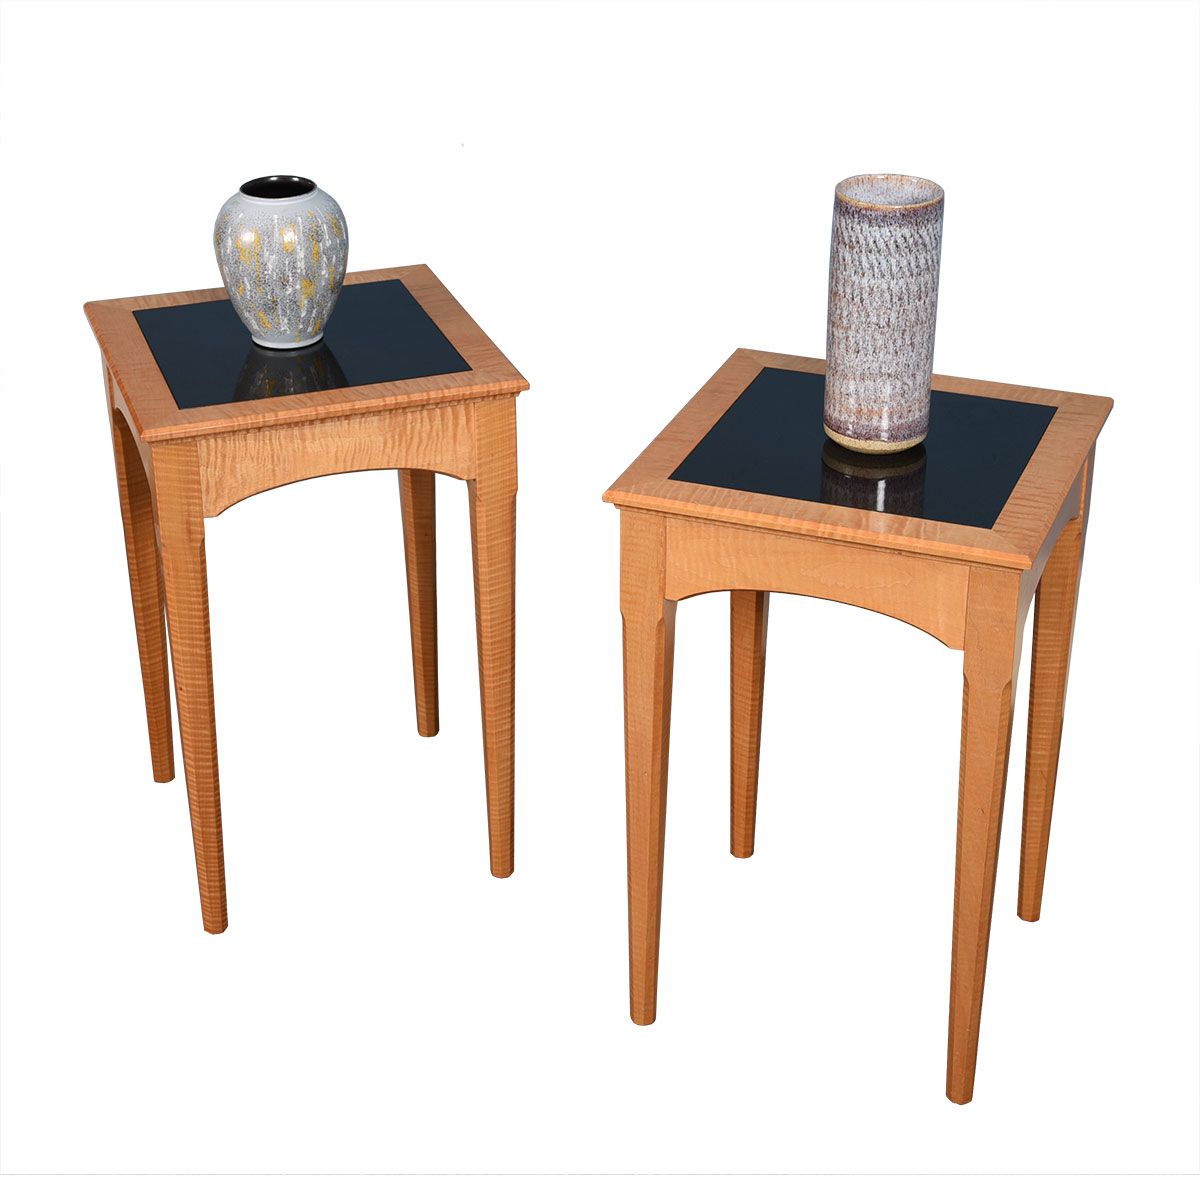 Pair Tall Contemporary Accent / Side Tables